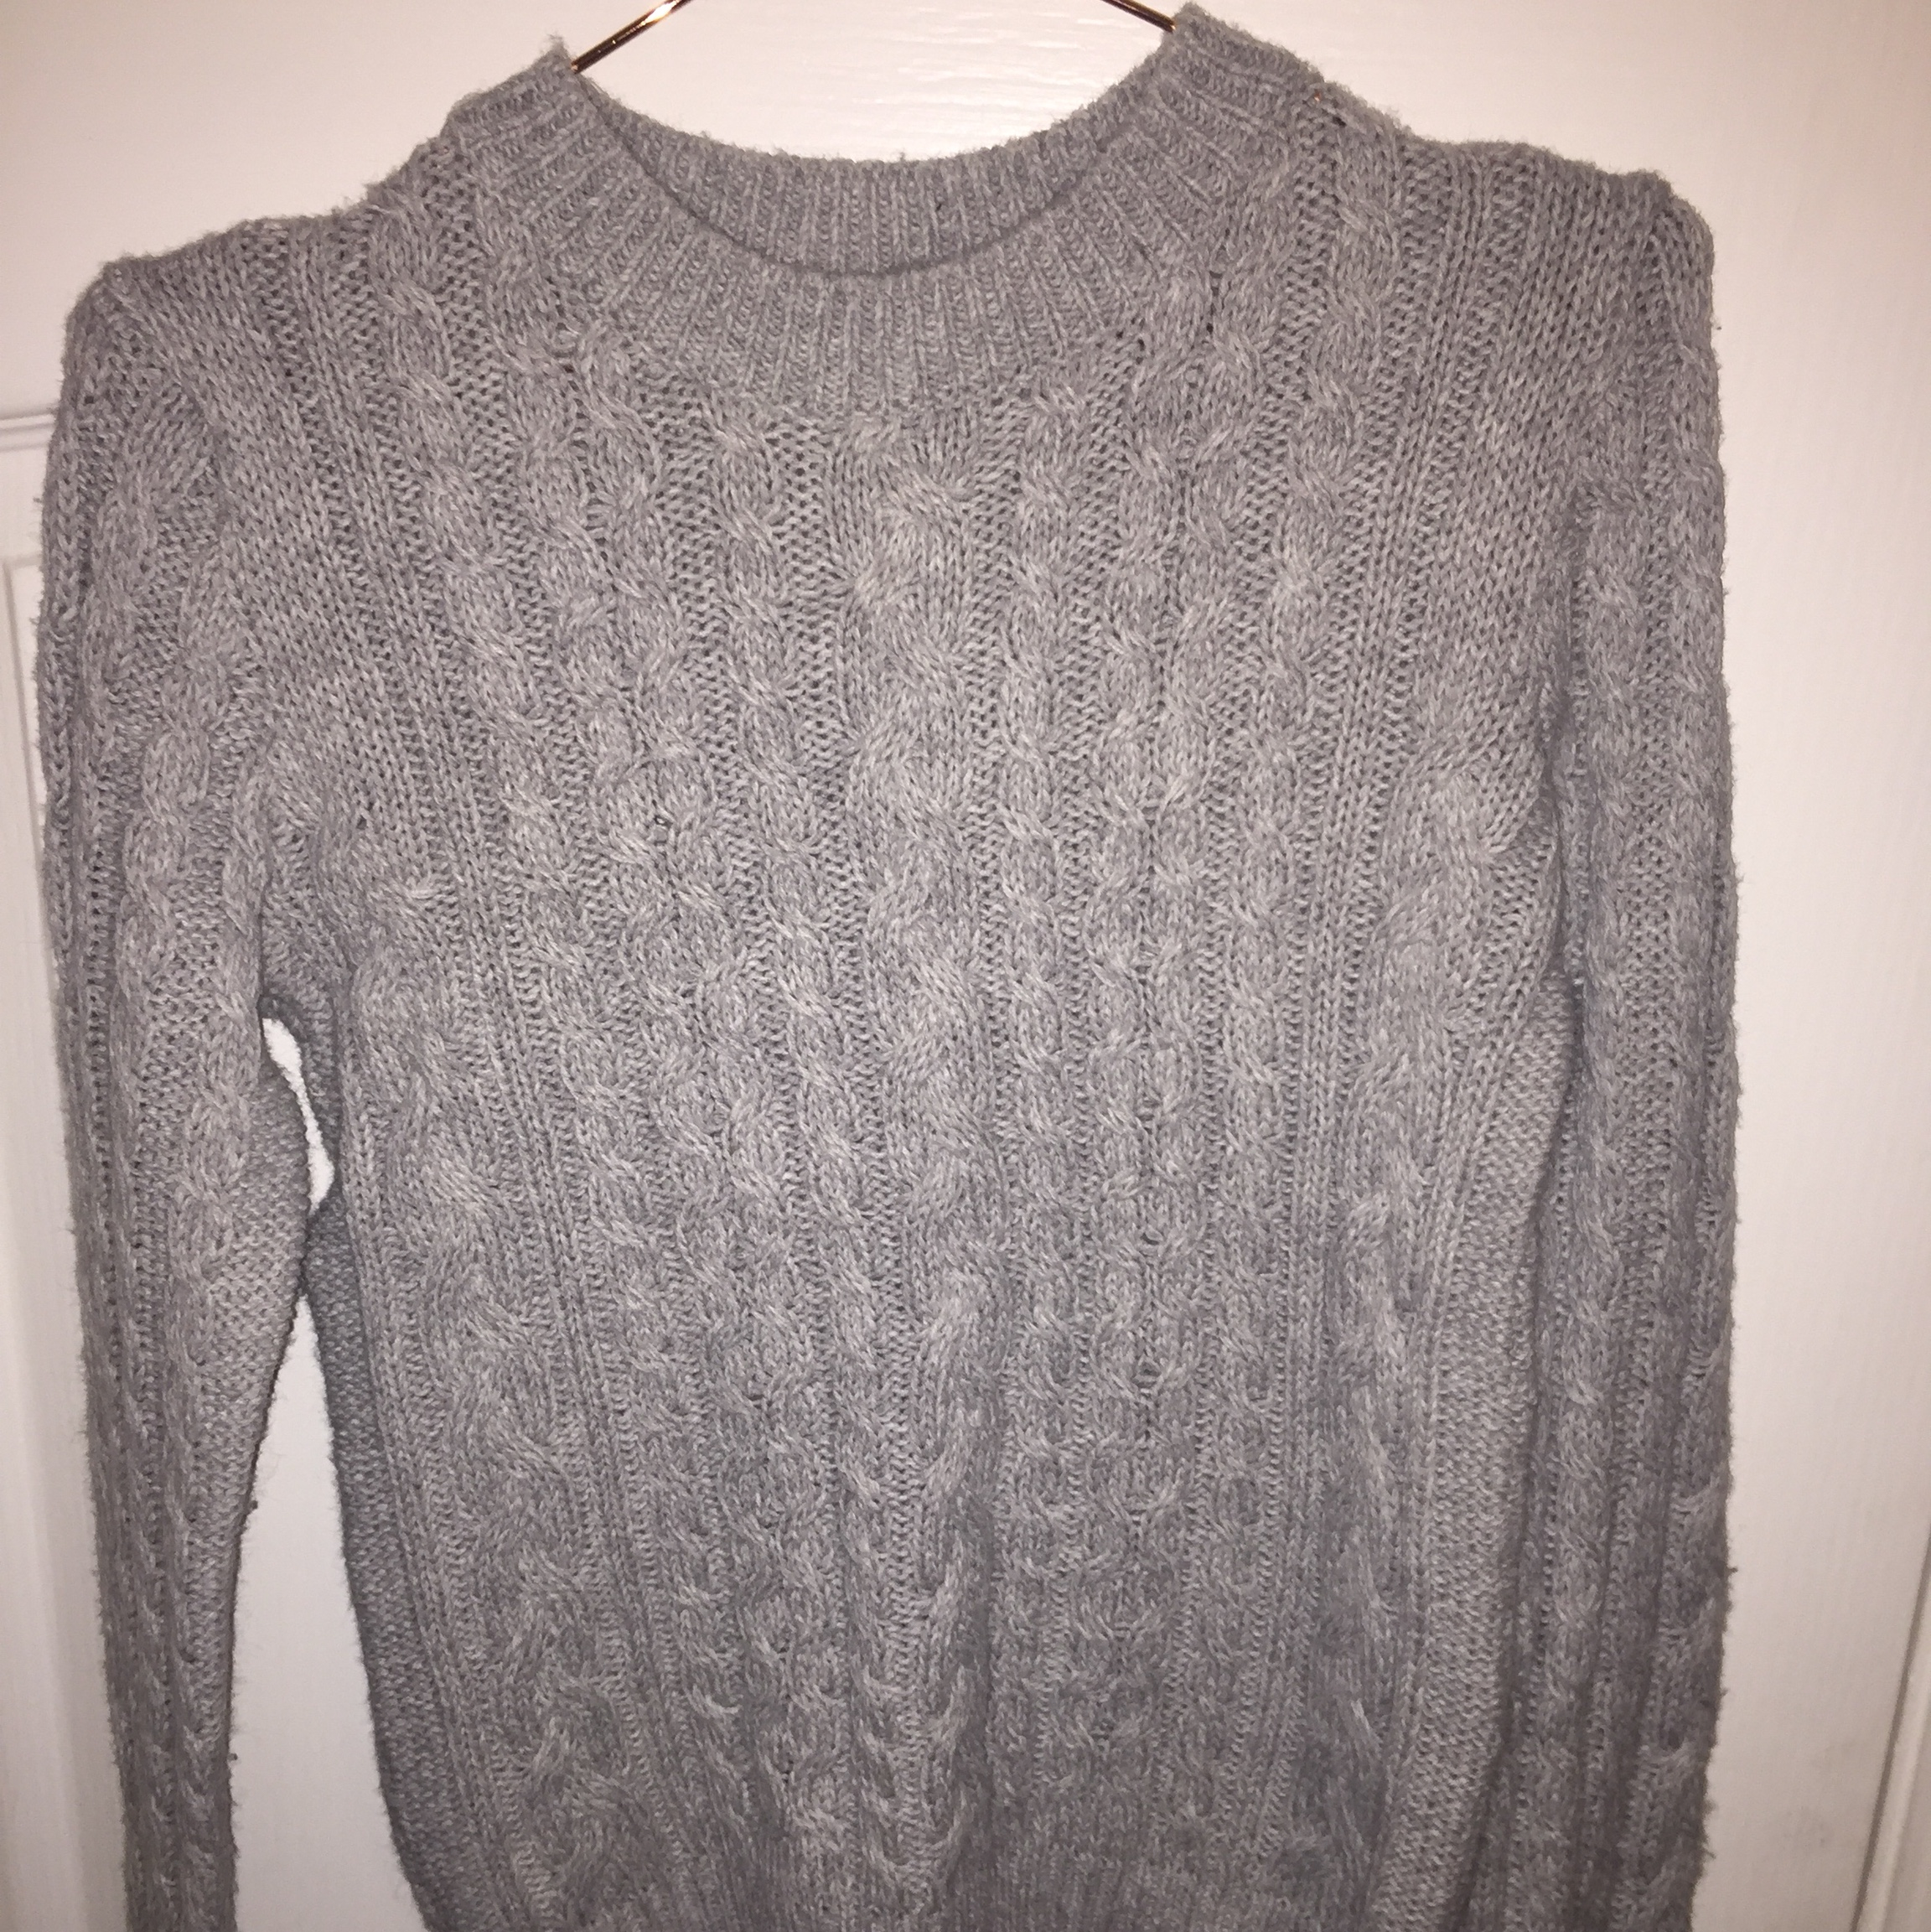 Grey cable knit jumper. Primark. Size 8. Worn once or twice - Depop 940c7a3e9